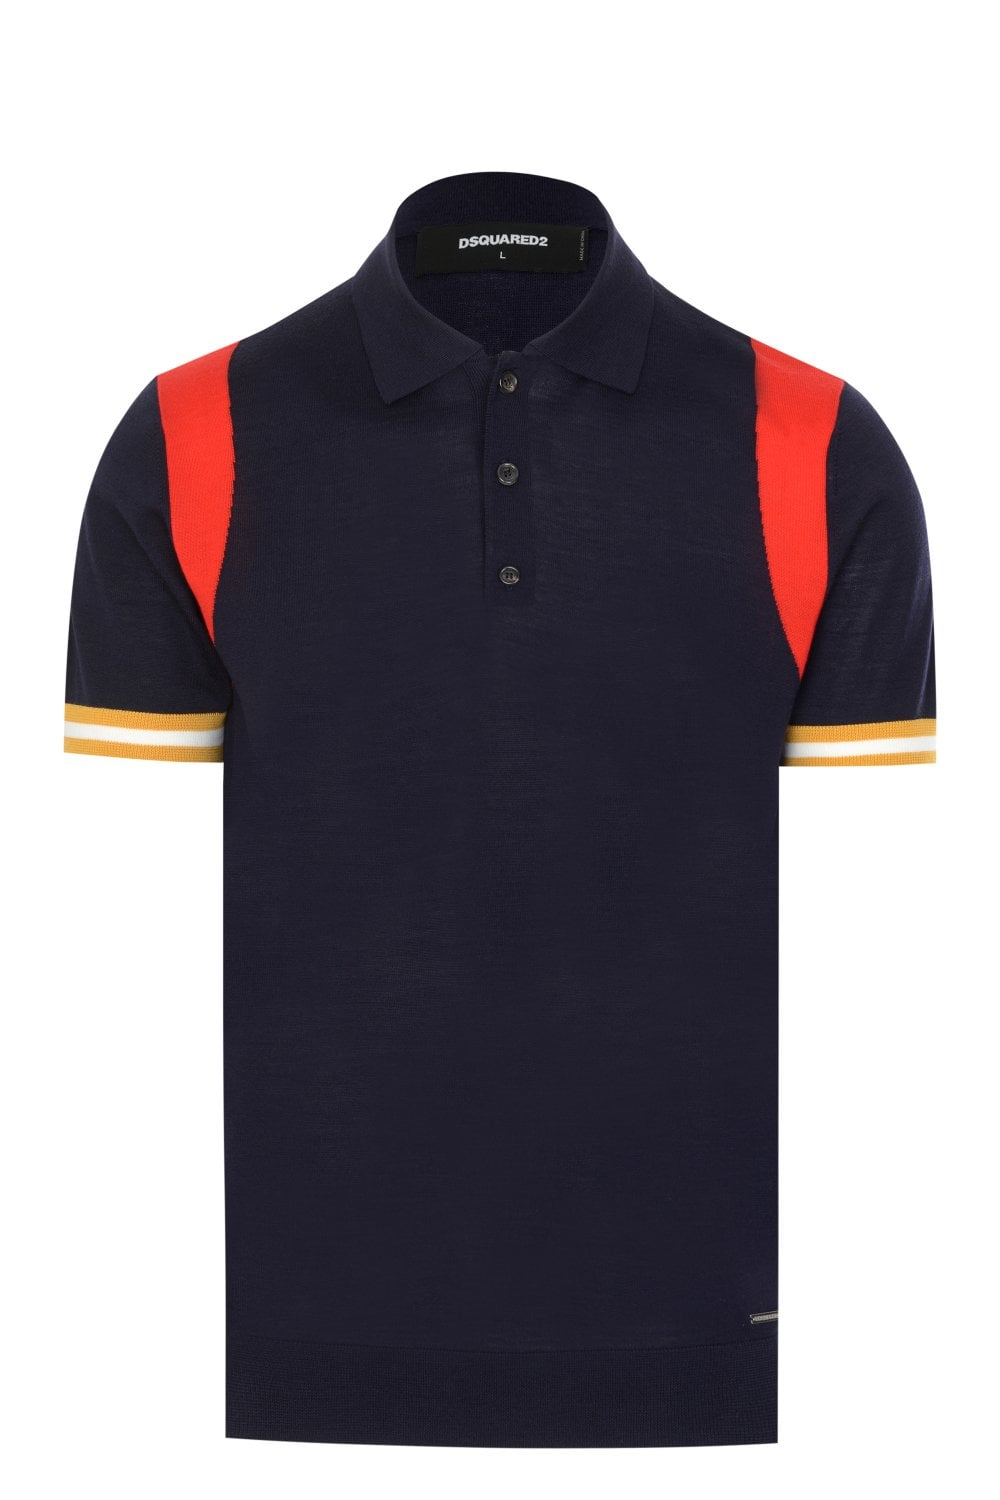 0be72bd3 DSQUARED2 Dsquared2 Knitted Polo Shirt - Clothing from Circle Fashion UK